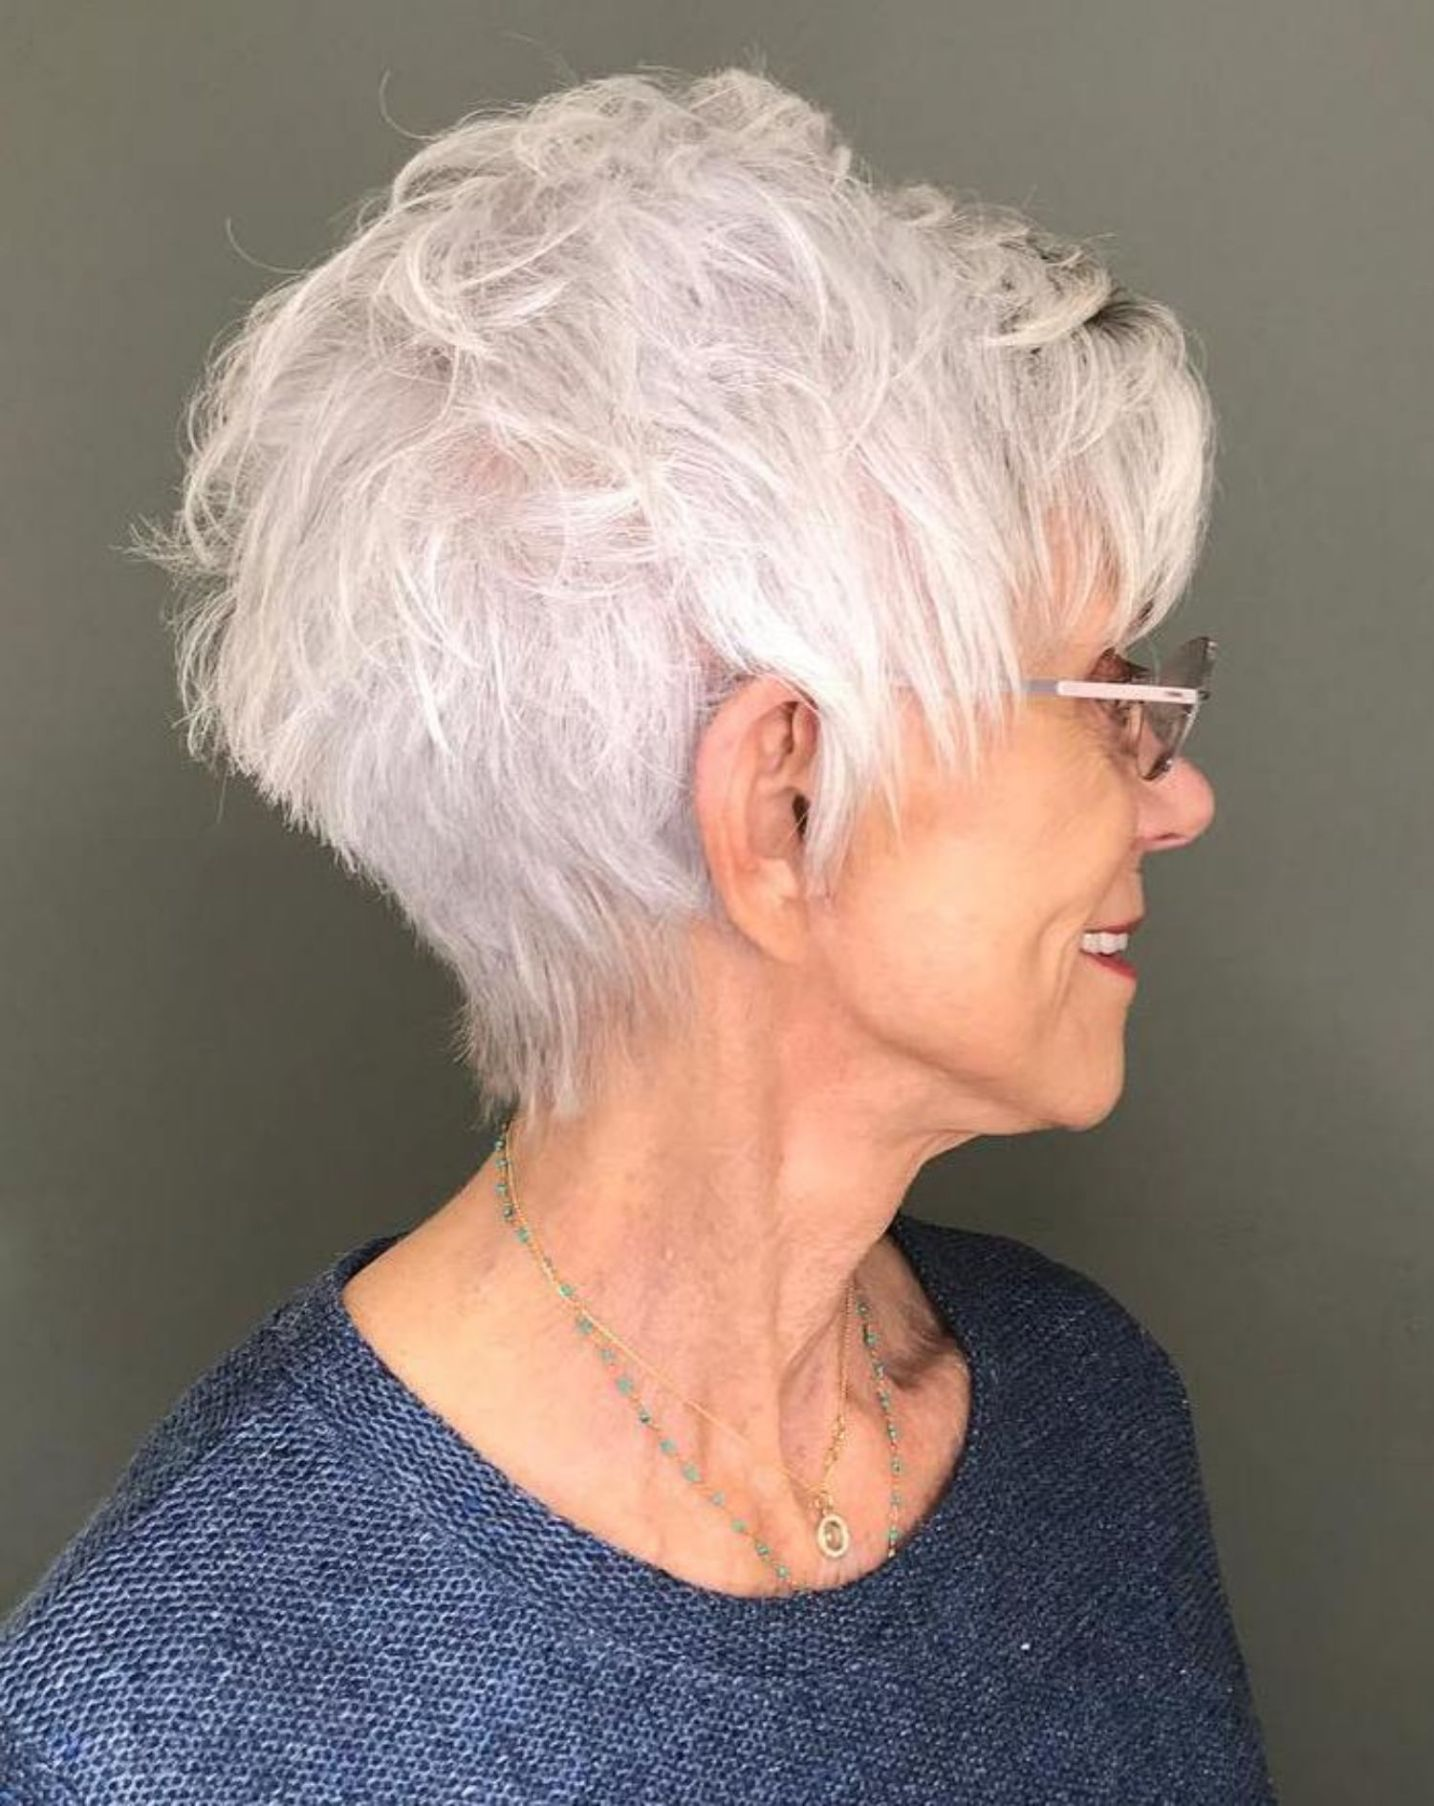 The Best Hairstyles And Haircuts For Women Over 70 Cool Hairstyles Thin Hair Short Haircuts Short Hair Styles